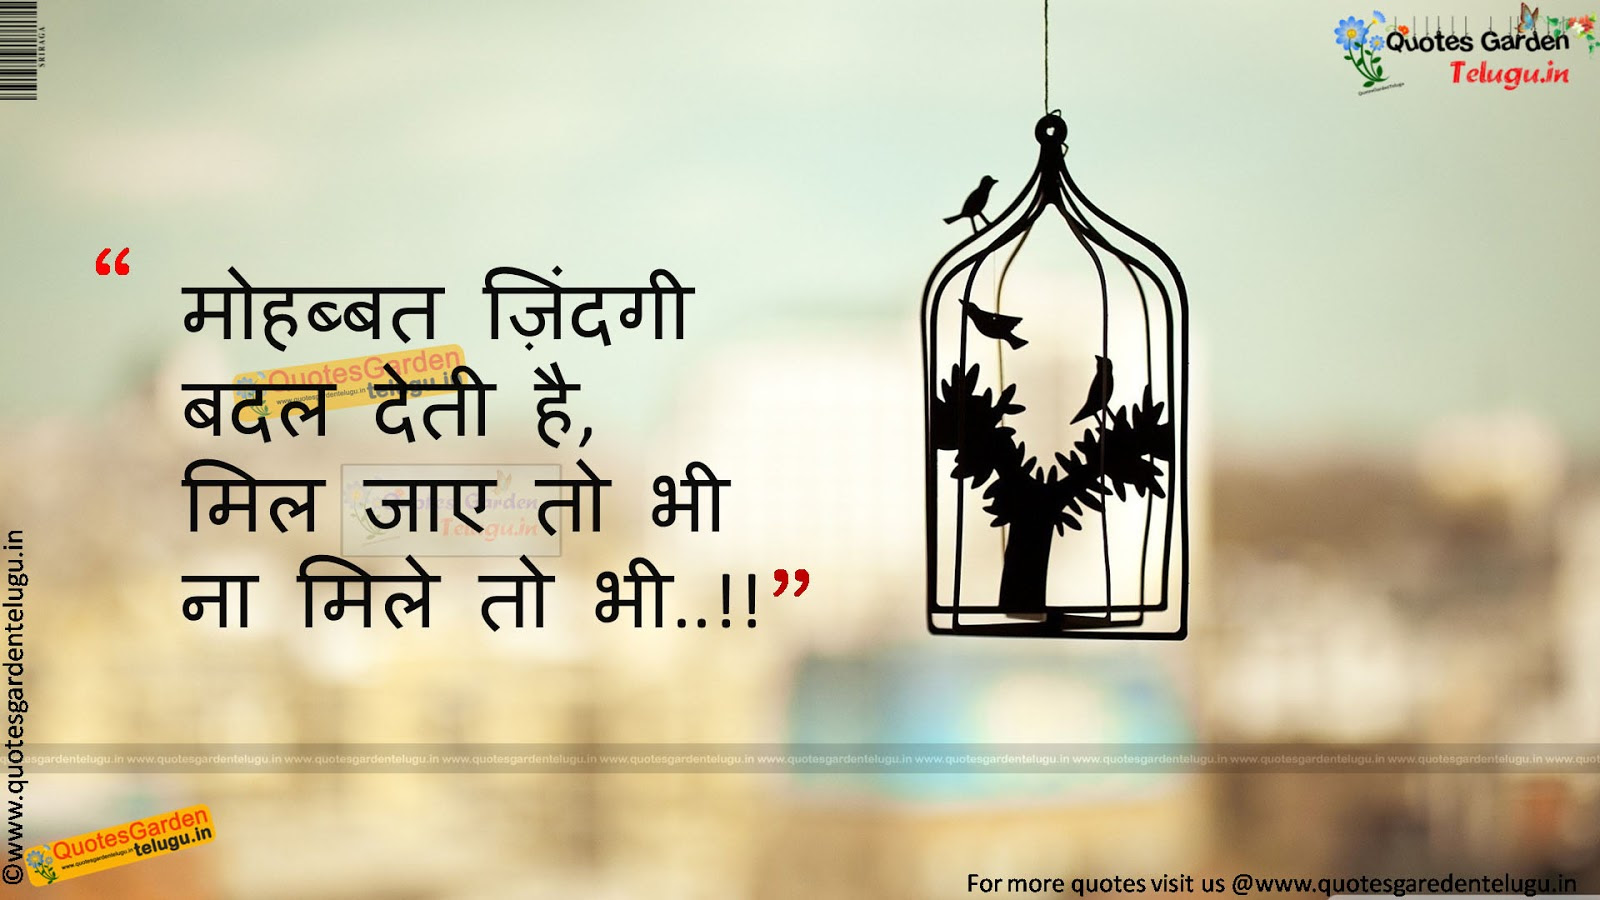 Heart Touching Wallpapers With Quotes For Love Best Heart Touching